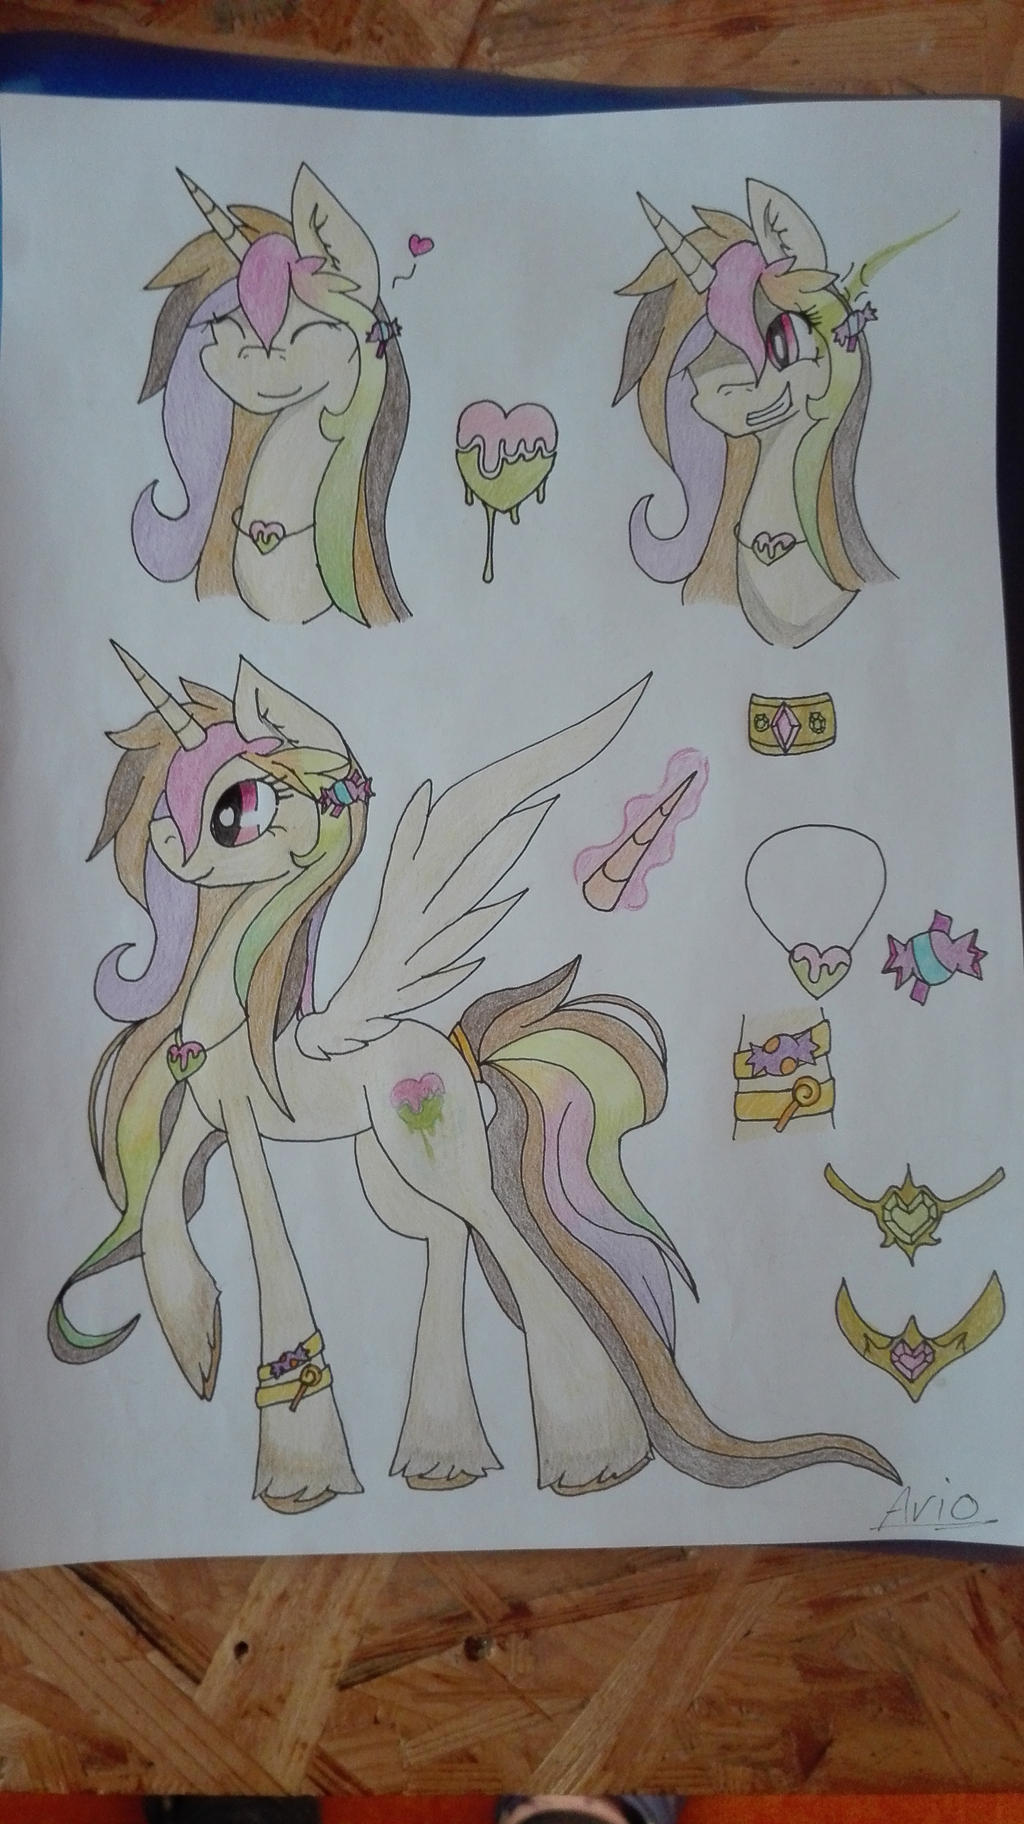 Princess Candy Coat - redesign by ArioGrimmRe